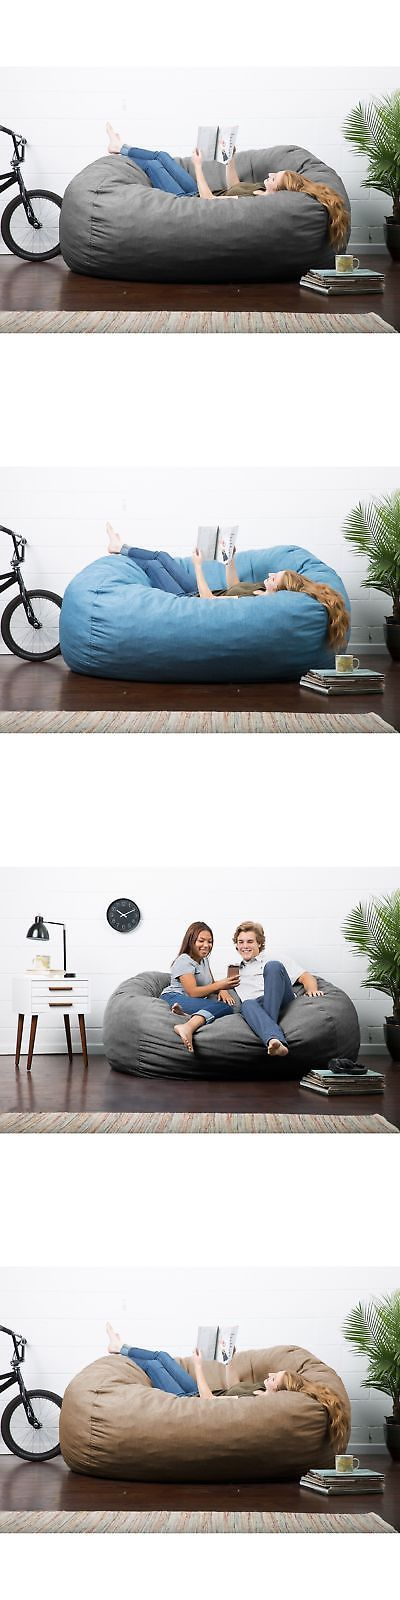 Tremendous Bean Bags And Inflatables 108428 Big Joe Lux Xxl Fuf Chair Unemploymentrelief Wooden Chair Designs For Living Room Unemploymentrelieforg